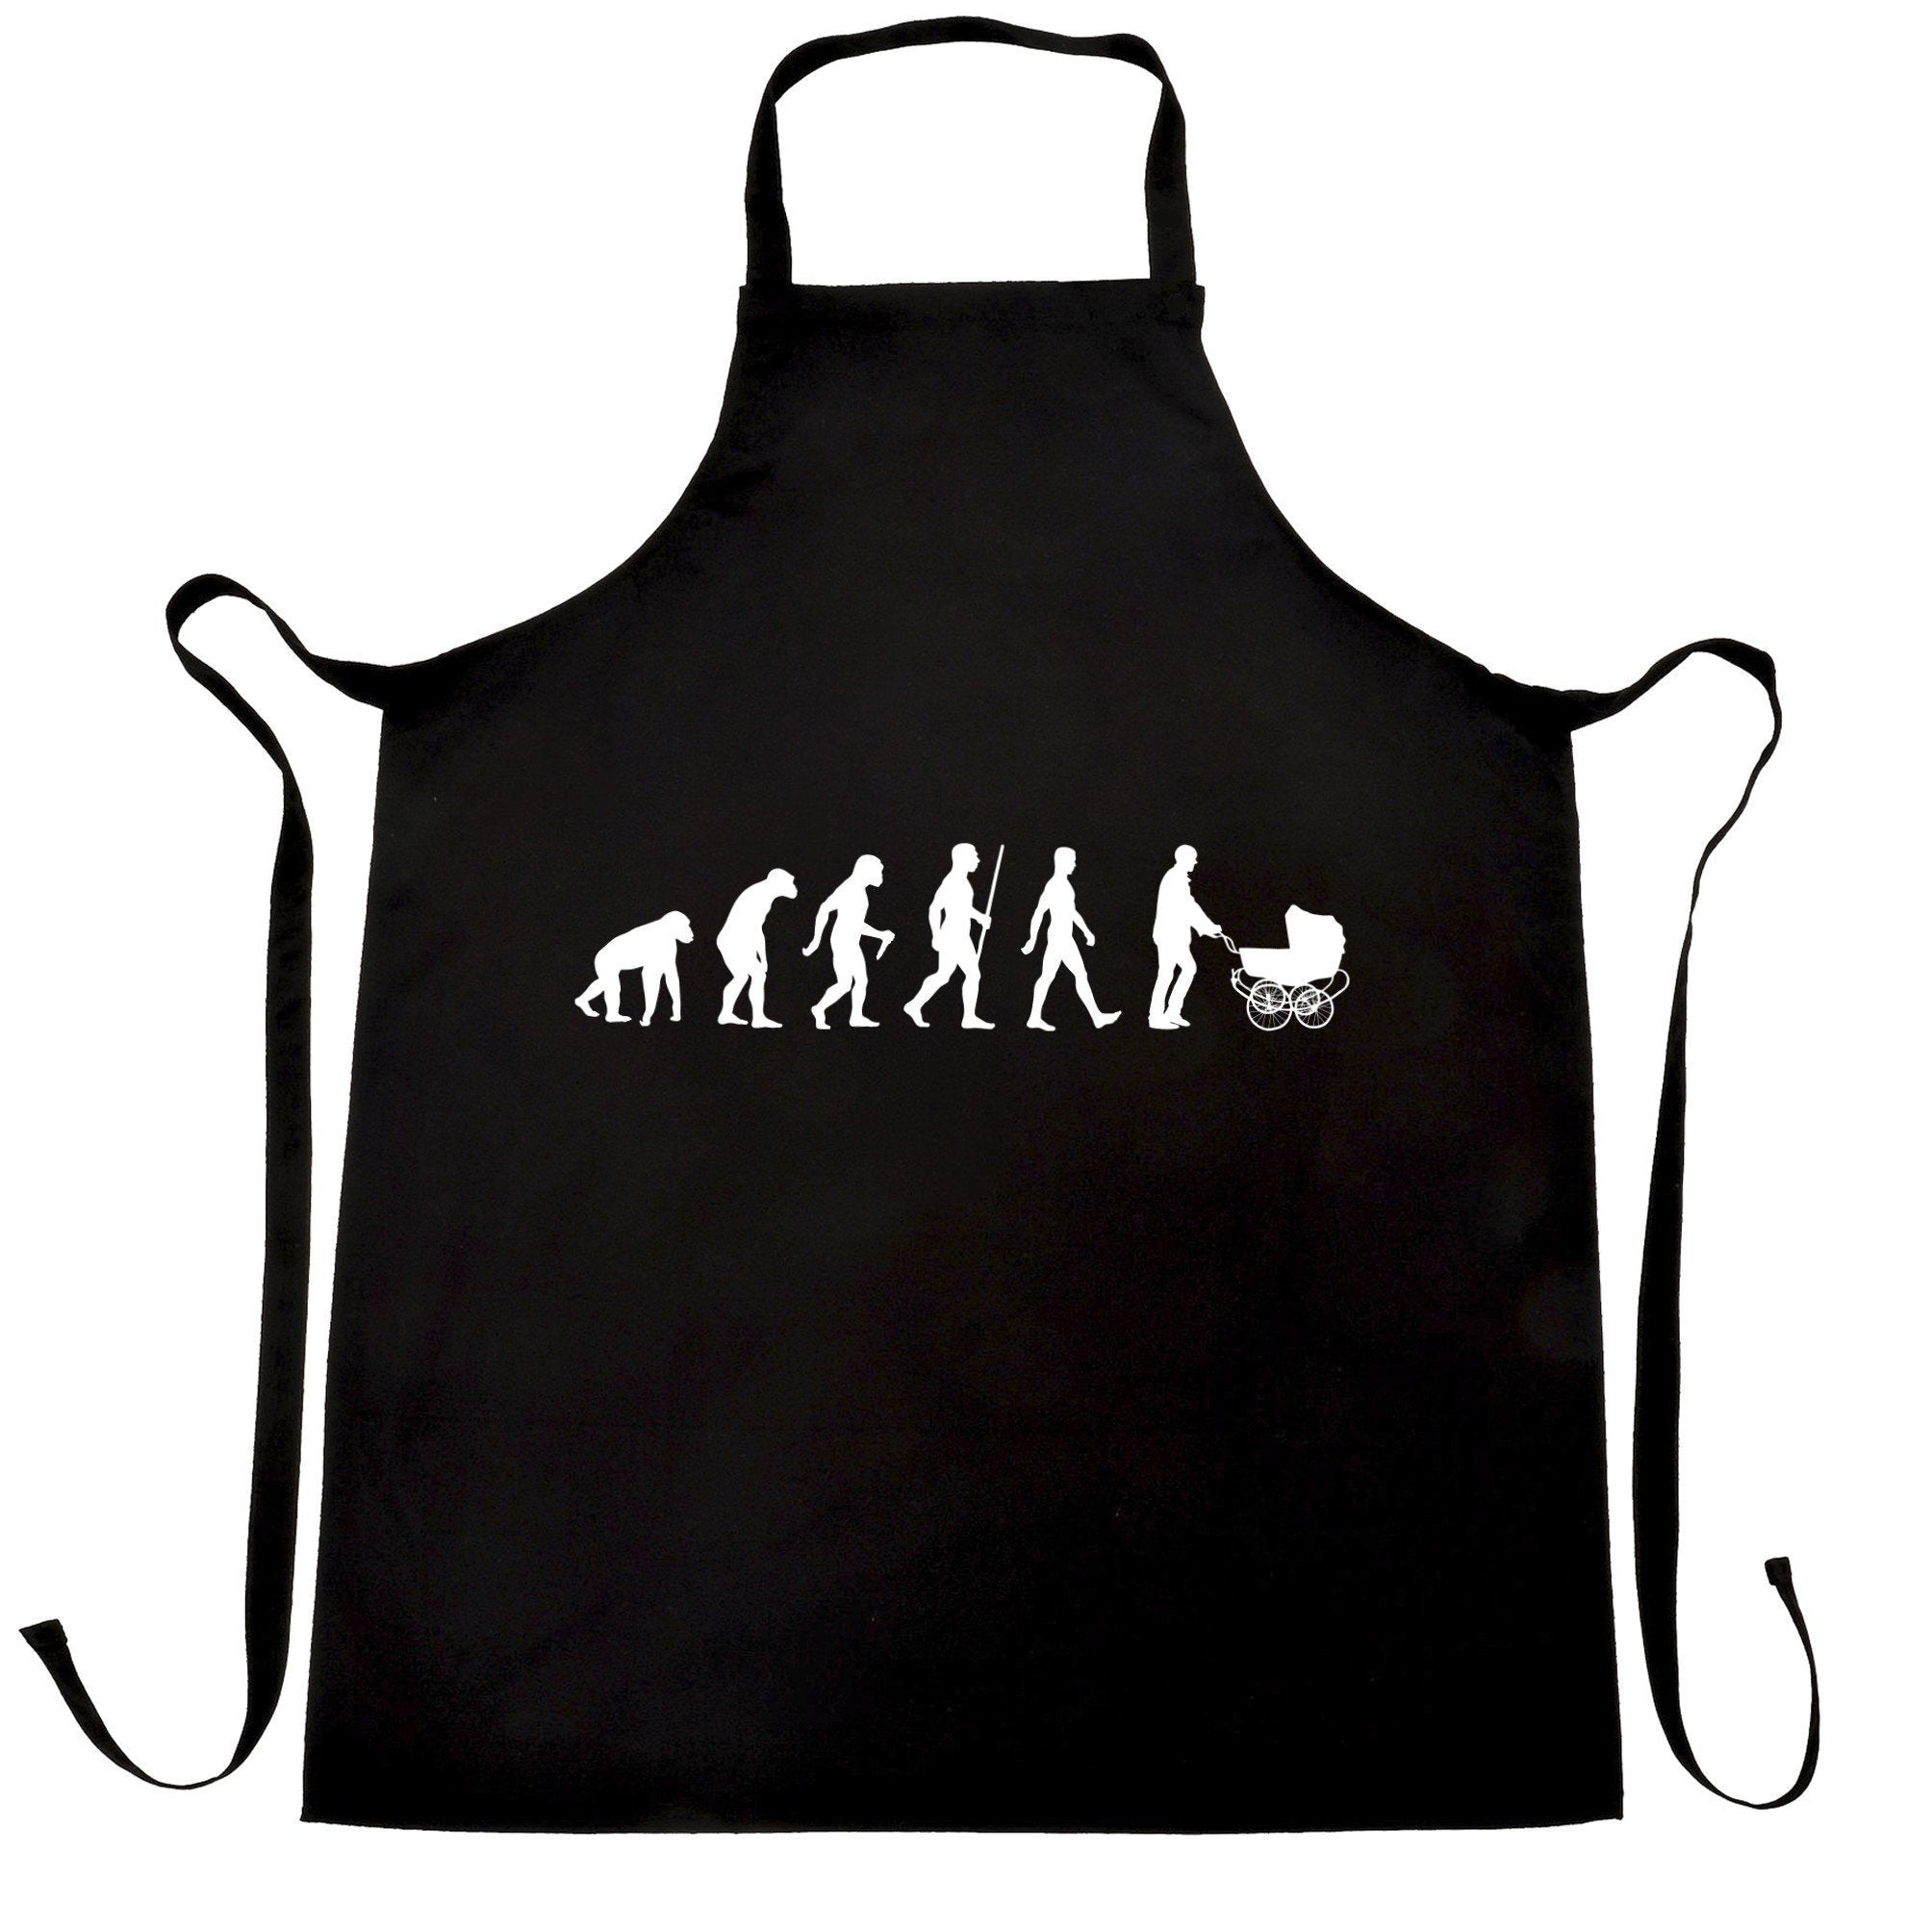 Parenthood Chef's Apron Evolution Of A Family New Born Baby